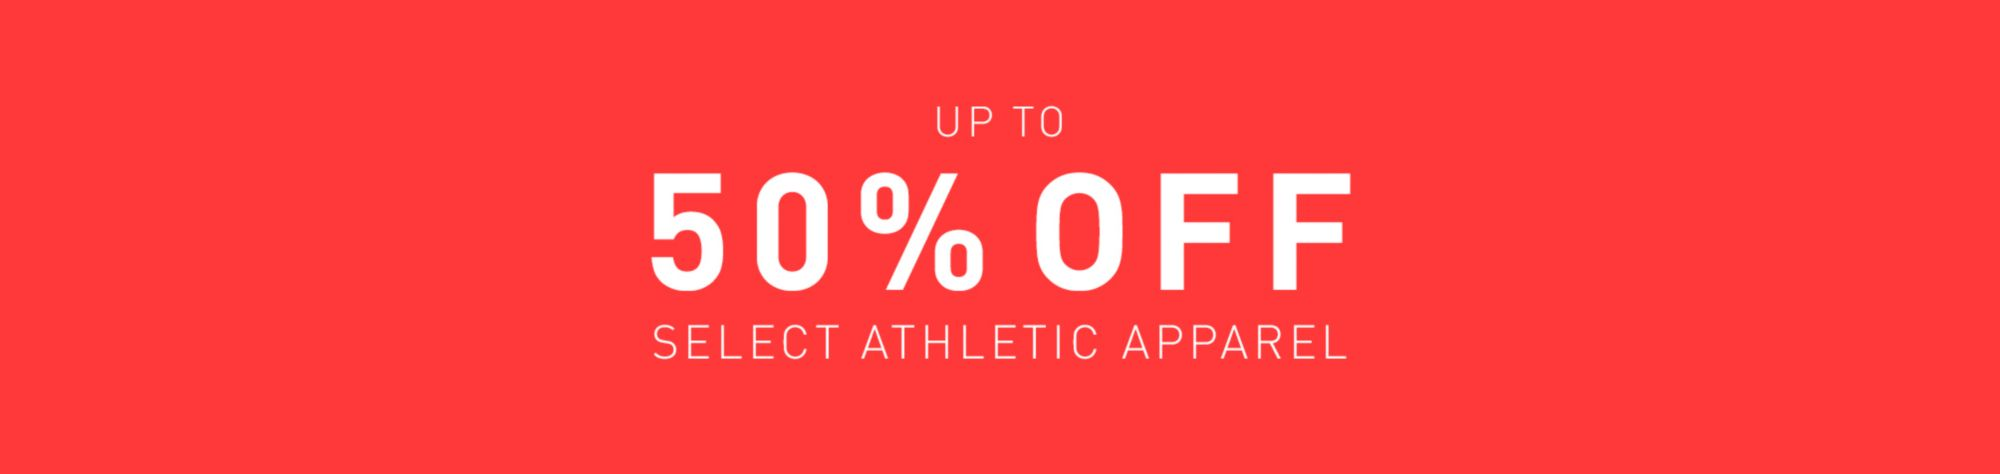 Select Athletic Apparel - Up to 50% Off